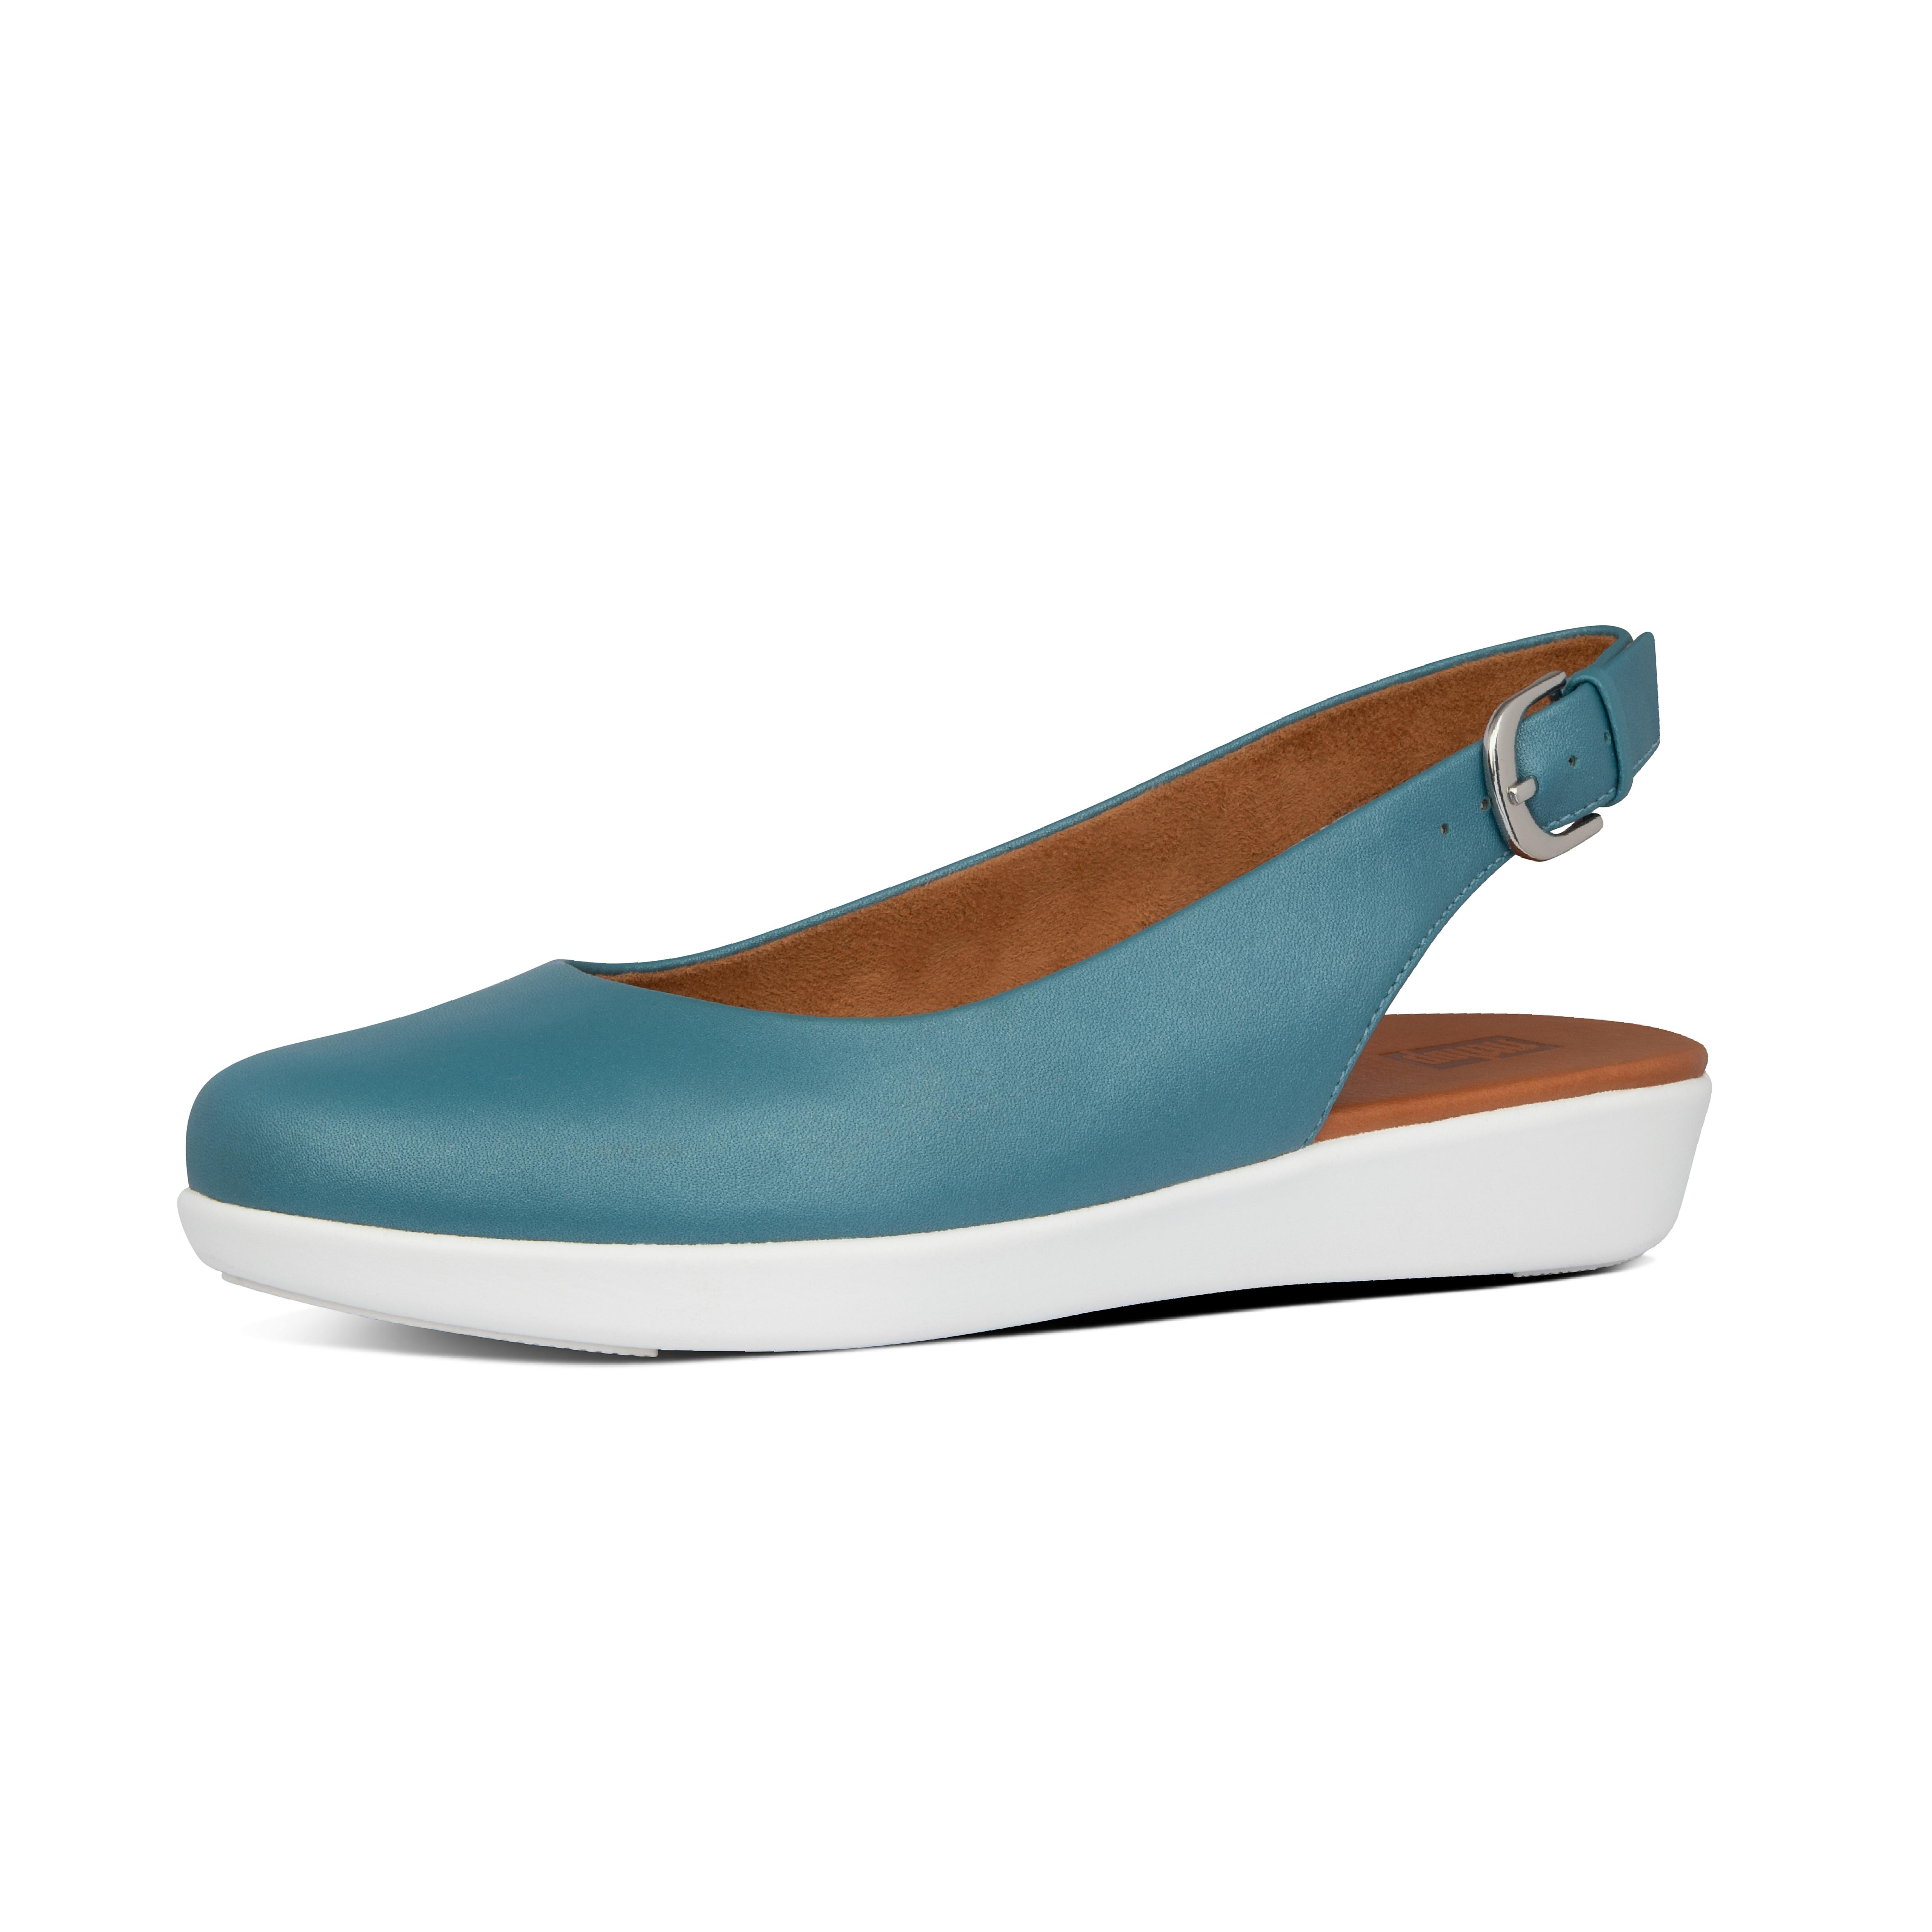 Contact Us | FitFlop